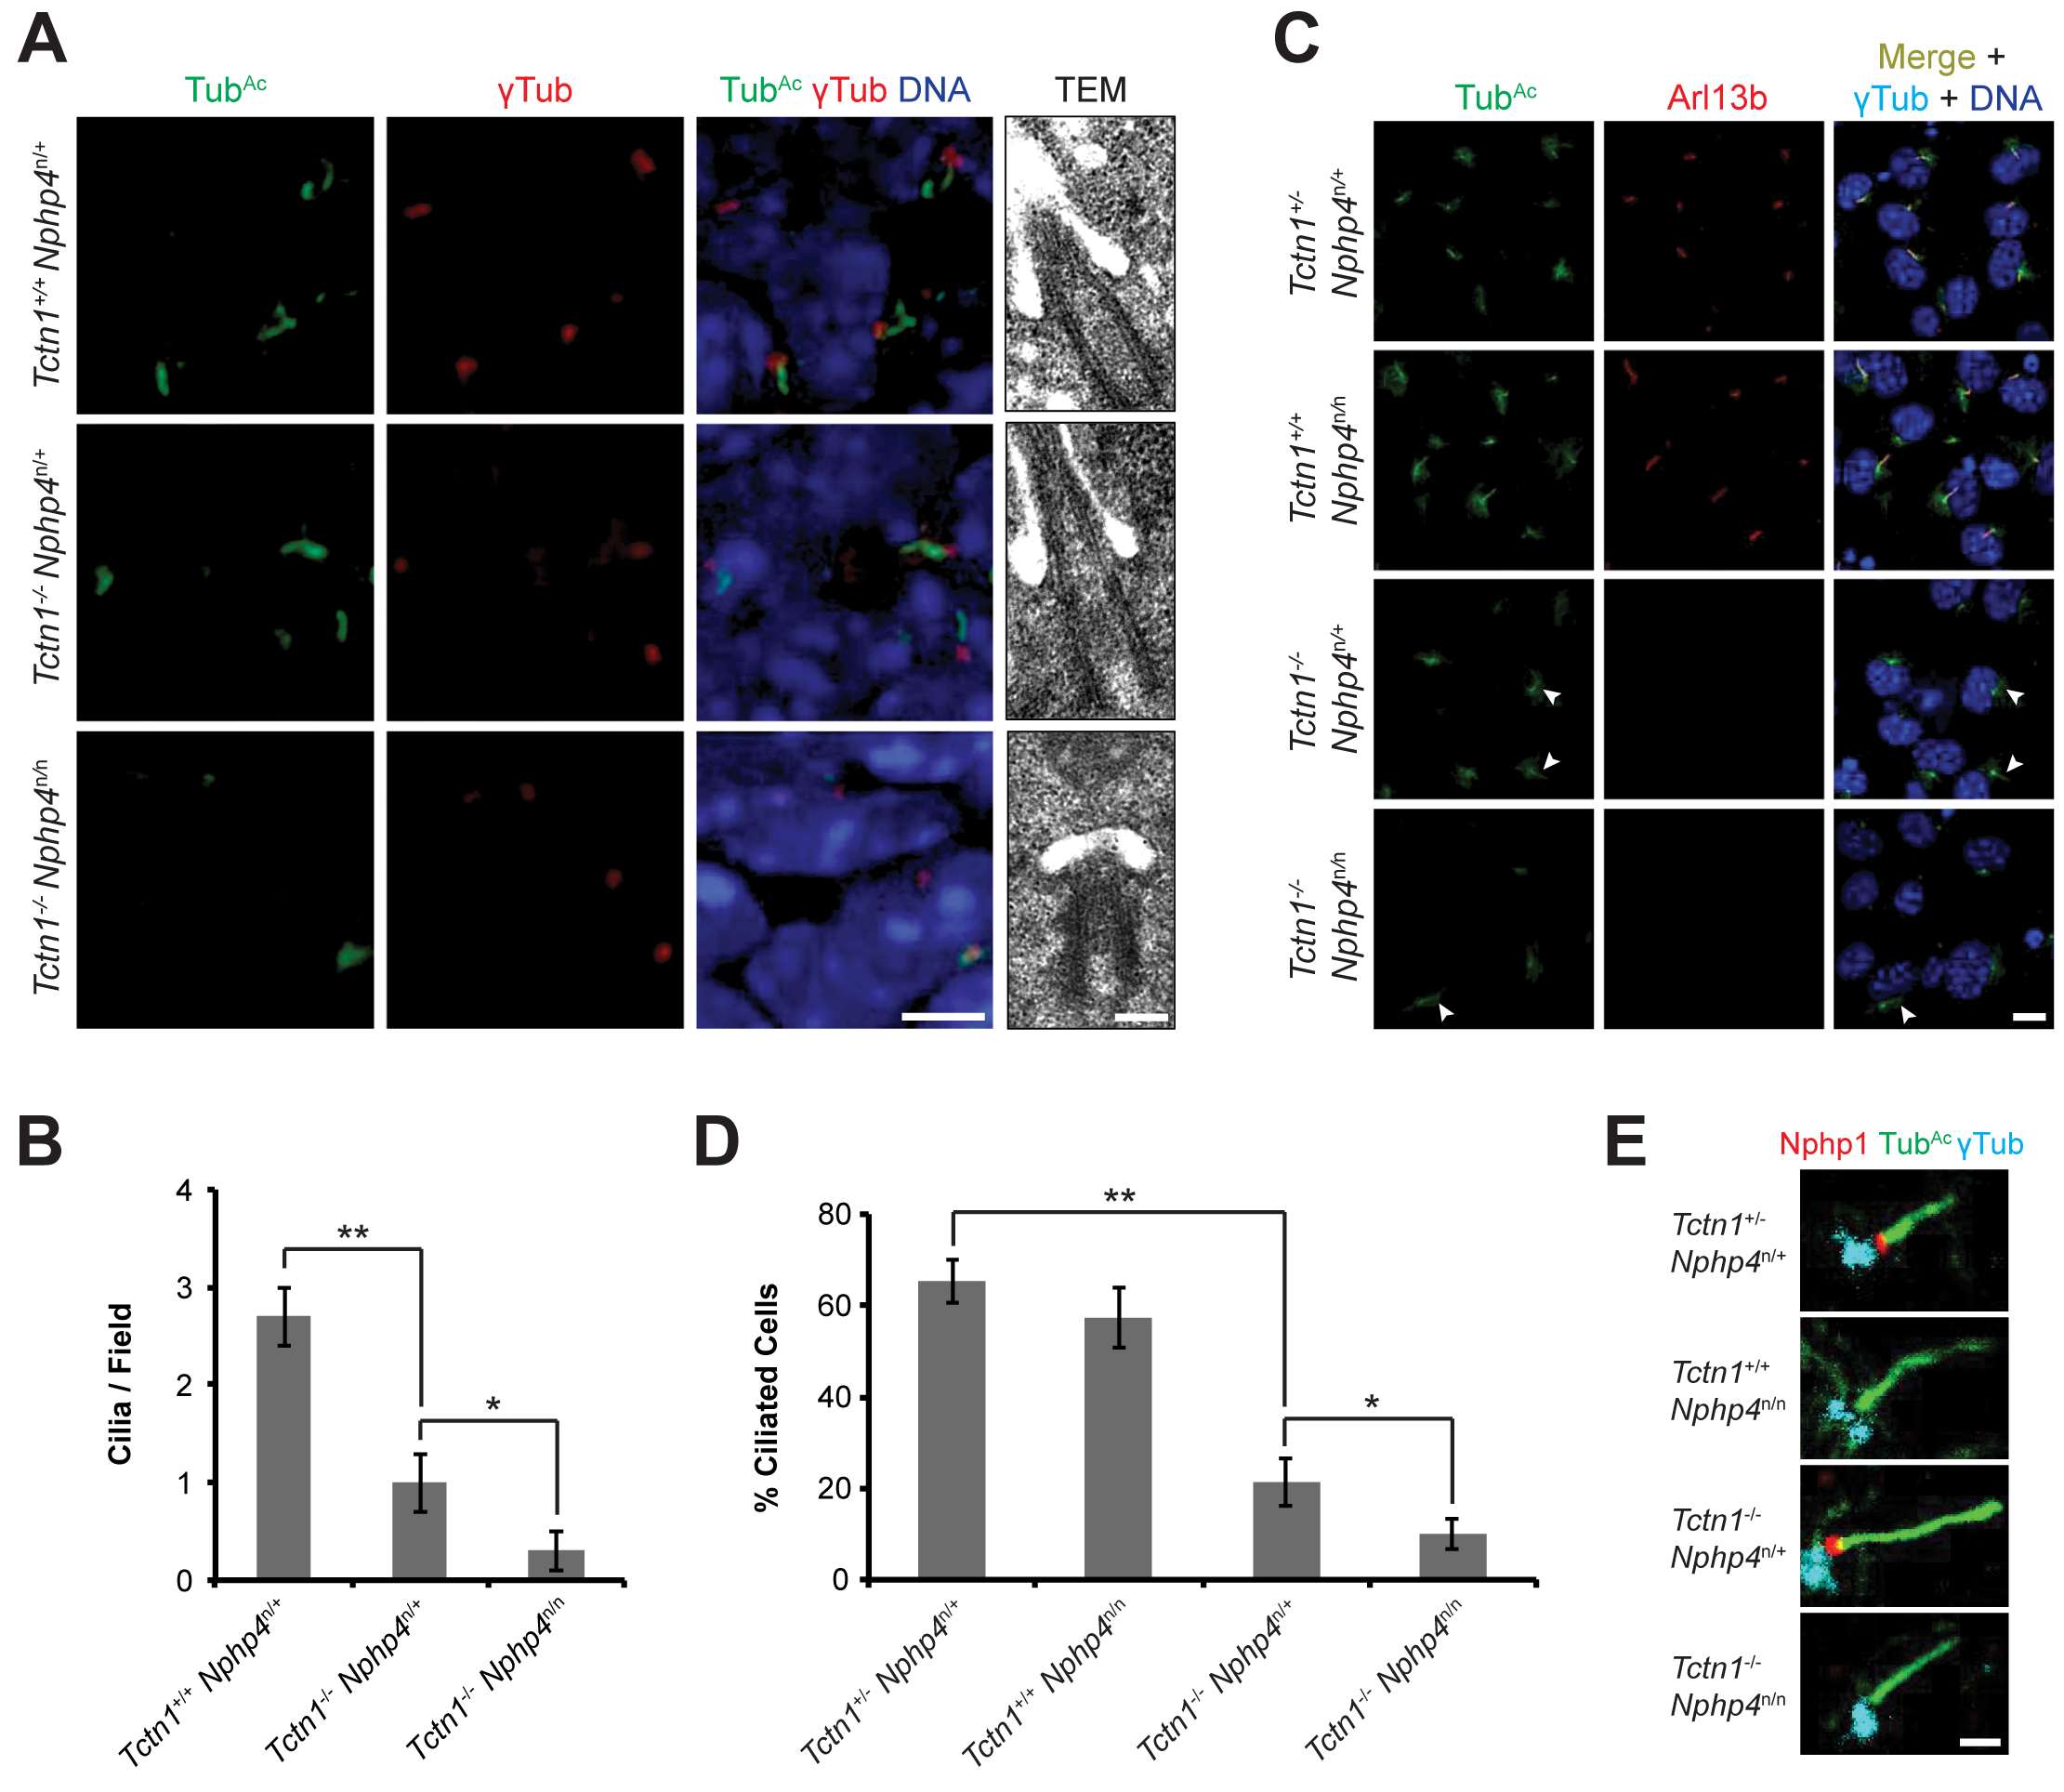 Mouse Tctn1 and Nphp4 have distinct roles in transition zone composition and overlapping roles in ciliogenesis.